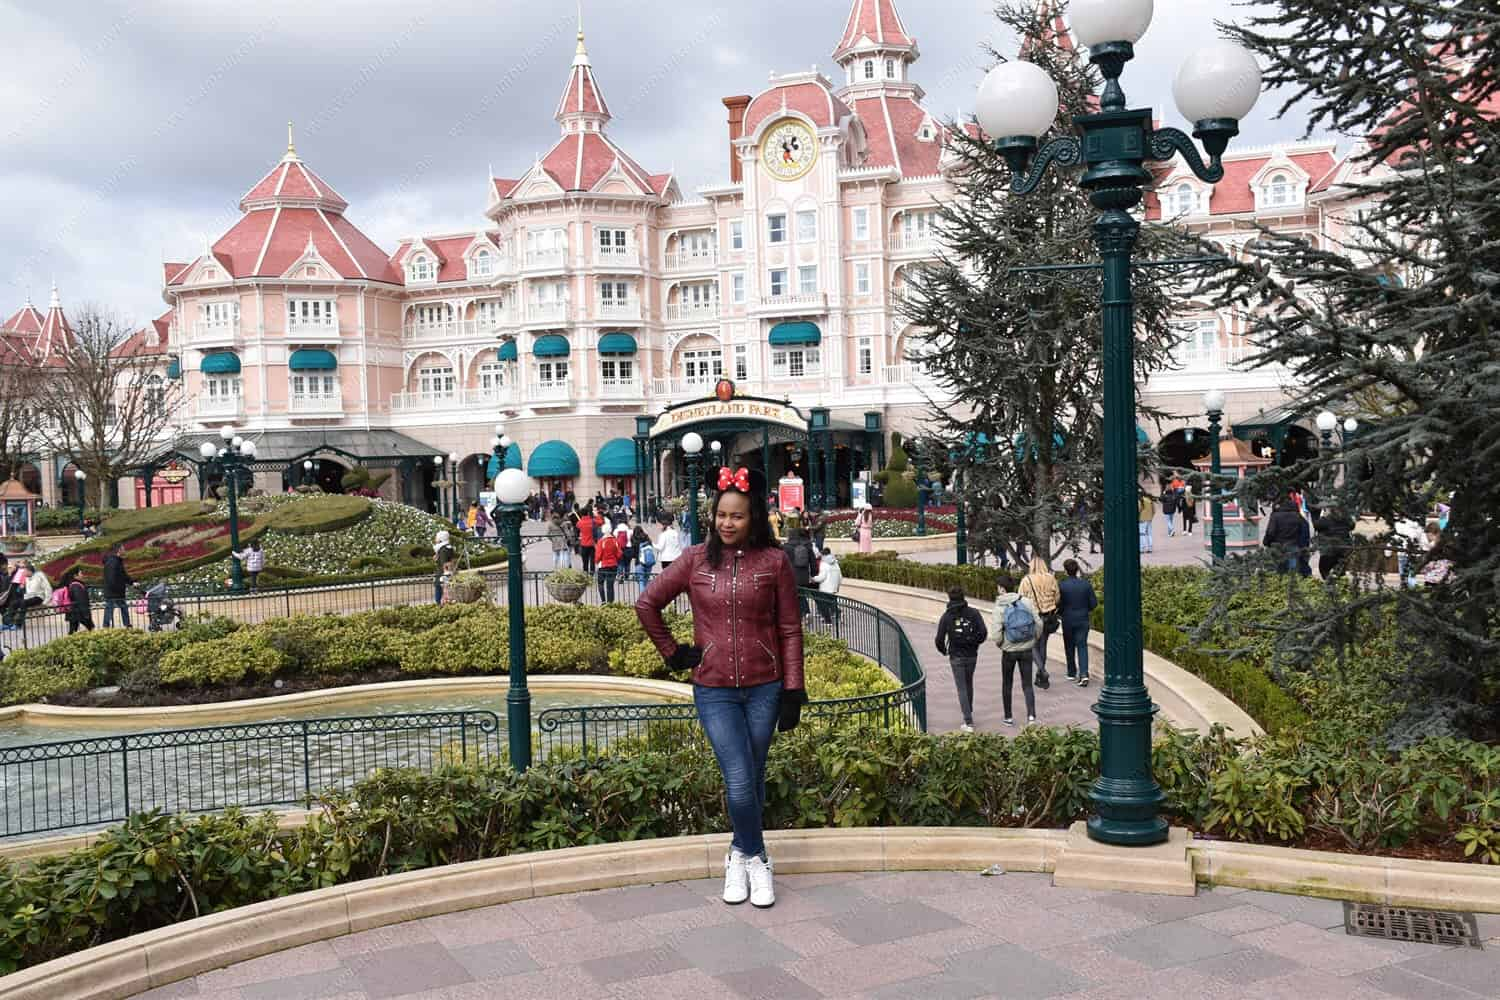 8 Tips For Disneyland Paris Vacation